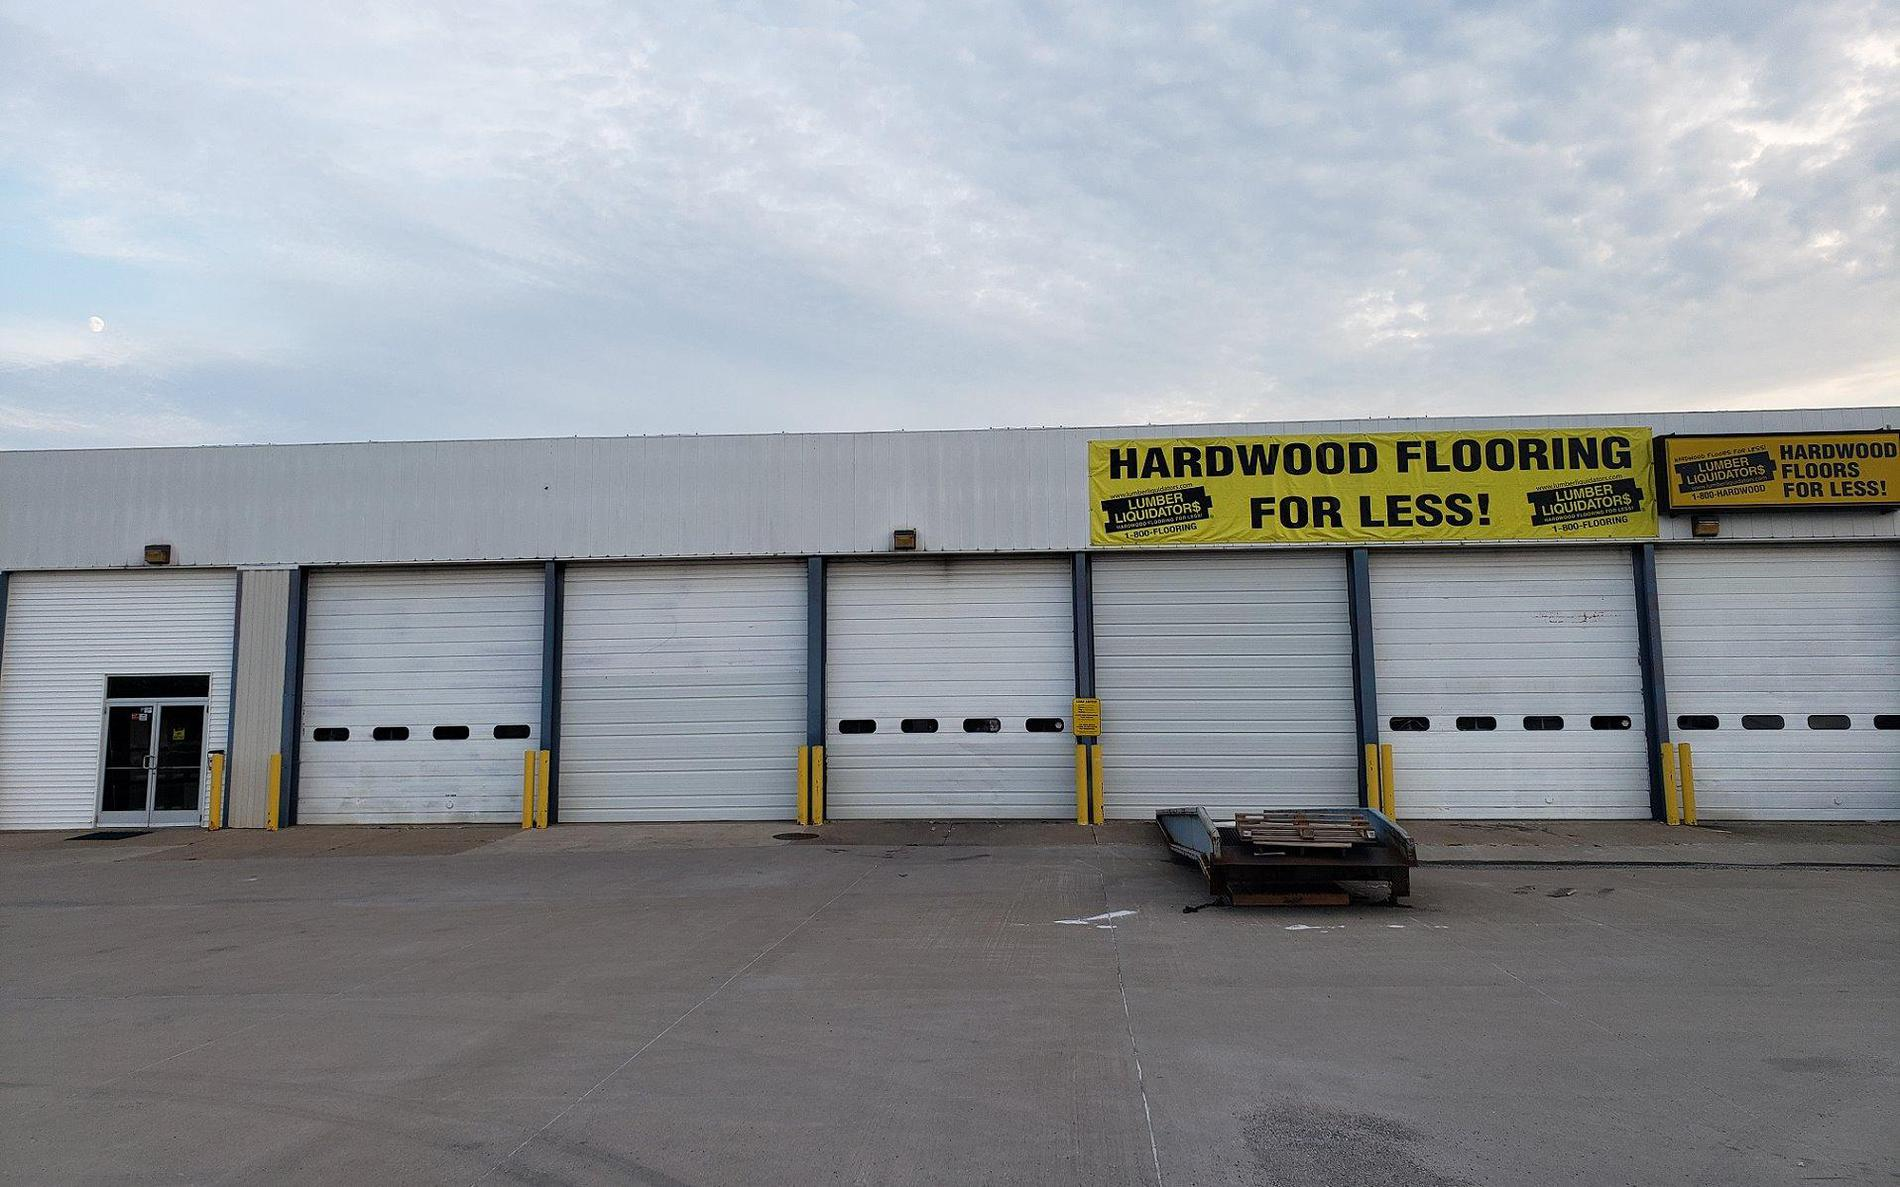 Lumber Liquidators Flooring #1145 Davenport | 321 West Kimberly Road | Store Front